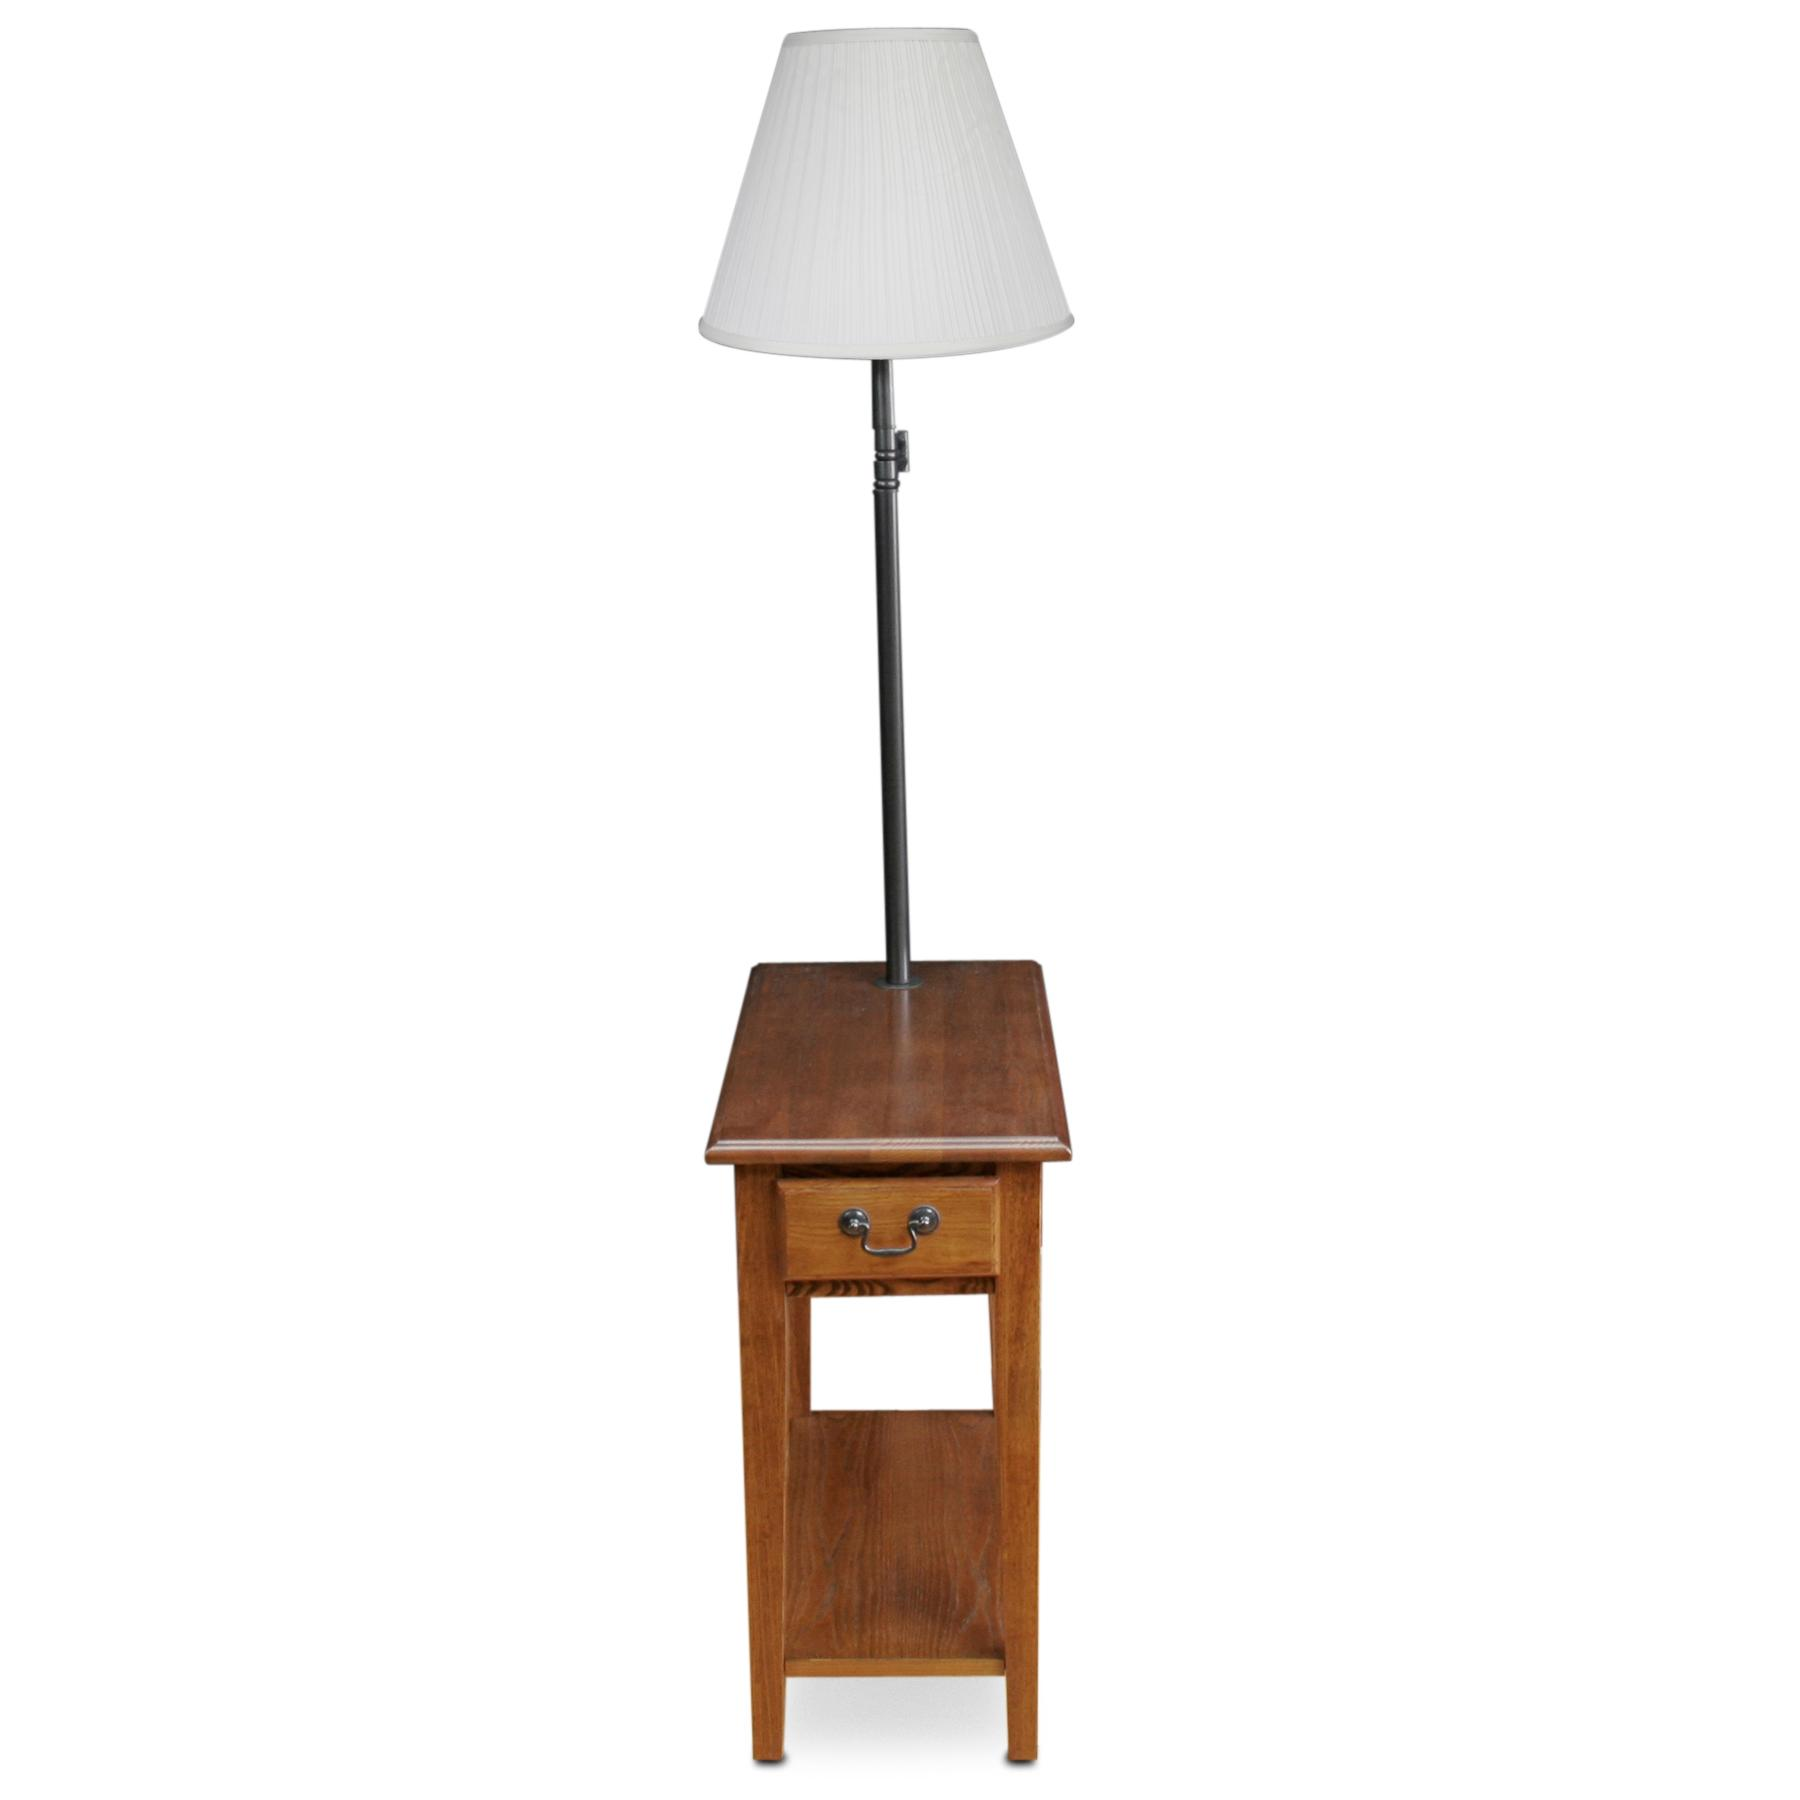 Leick chair side lamp table with drawer medium oak for Leick swing arm floor lamp with wood end table